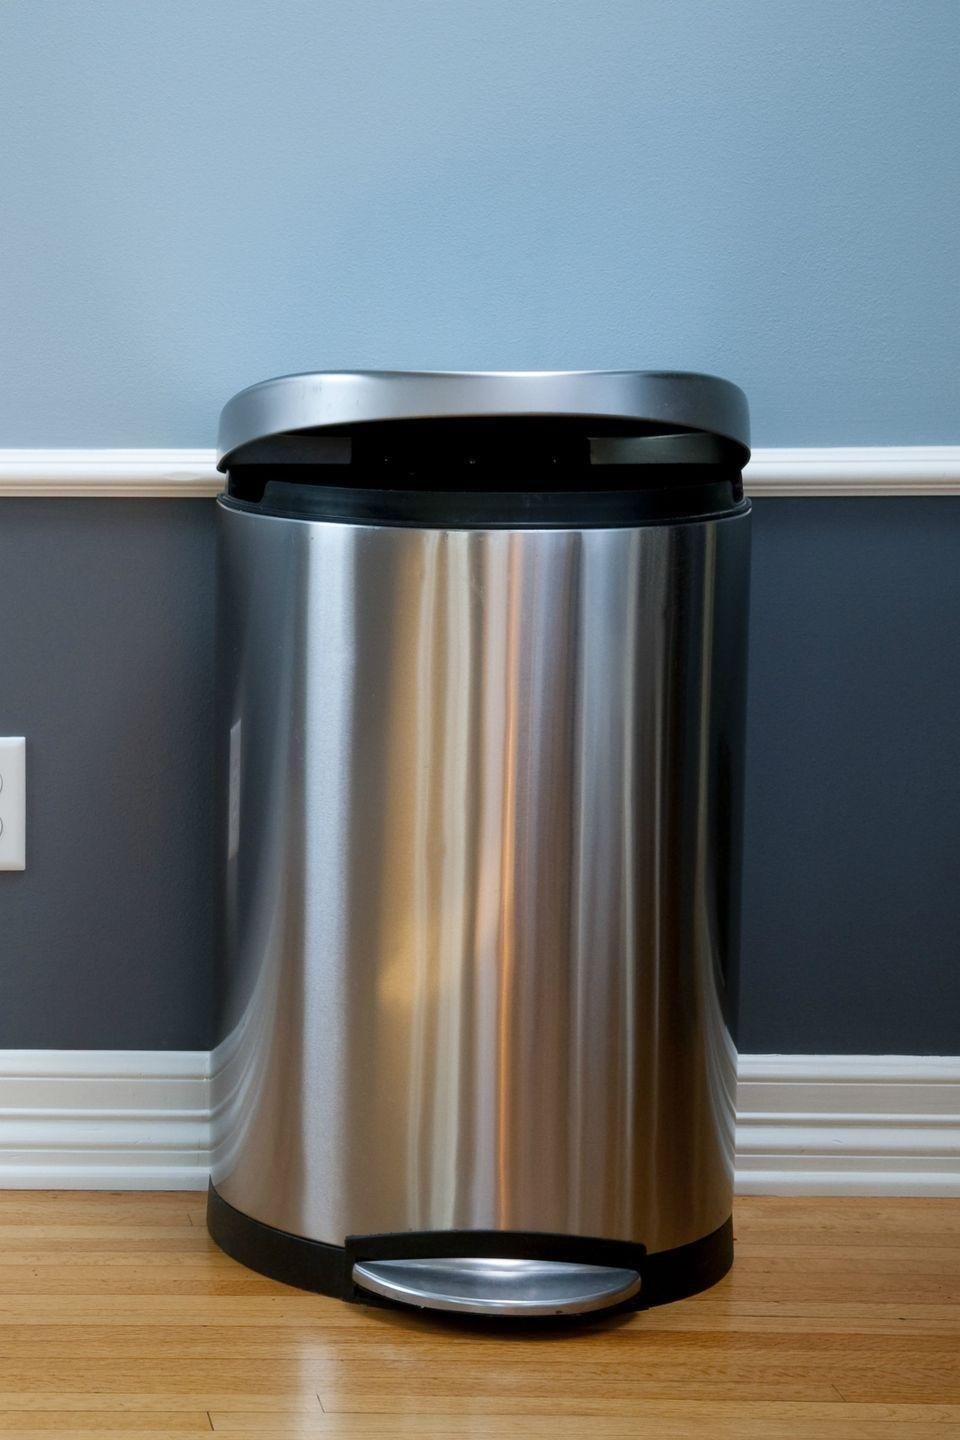 """<p>Keep a wastebasket in every room of your house so there's always a place to <a href=""""https://www.womansday.com/home/organizing-cleaning/a5468/10-easy-to-recycle-kitchen-items-113566/"""" rel=""""nofollow noopener"""" target=""""_blank"""" data-ylk=""""slk:toss trash"""" class=""""link rapid-noclick-resp"""">toss trash</a>, suggests Waddill.</p><p><strong><a class=""""link rapid-noclick-resp"""" href=""""https://www.amazon.com/dp/B01HQOHRRG/ref=dp_prsubs_3?tag=syn-yahoo-20&ascsubtag=%5Bartid%7C10070.g.3310%5Bsrc%7Cyahoo-us"""" rel=""""nofollow noopener"""" target=""""_blank"""" data-ylk=""""slk:SHOP TRASH CANS"""">SHOP TRASH CANS</a></strong></p>"""